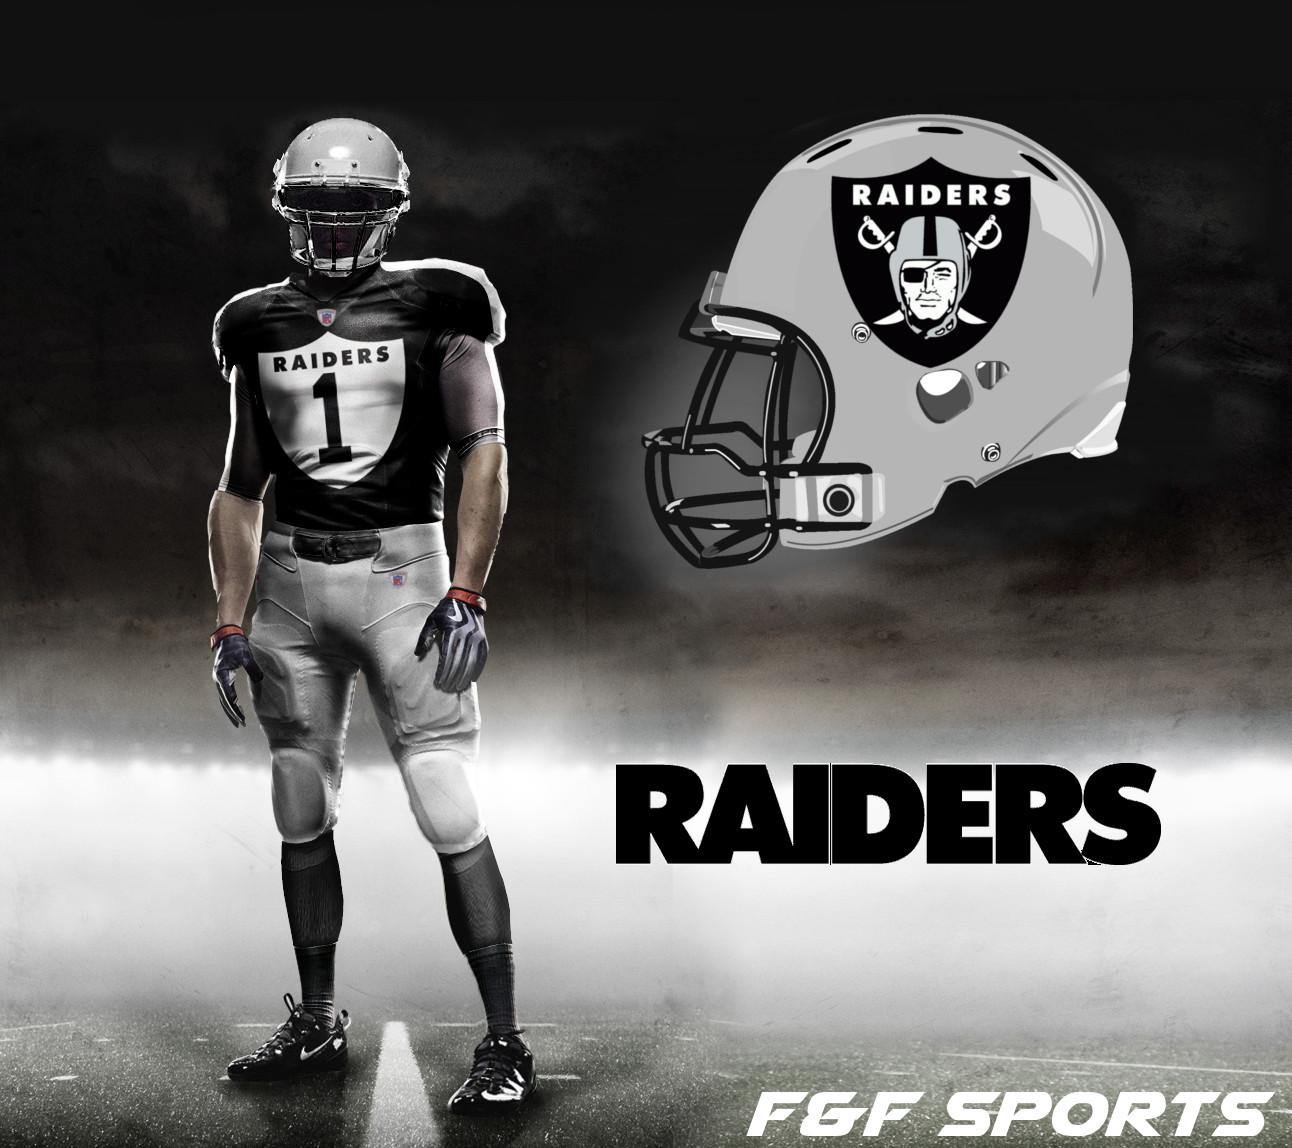 Oakland Raiders Nike Uniforms Oakland raiders